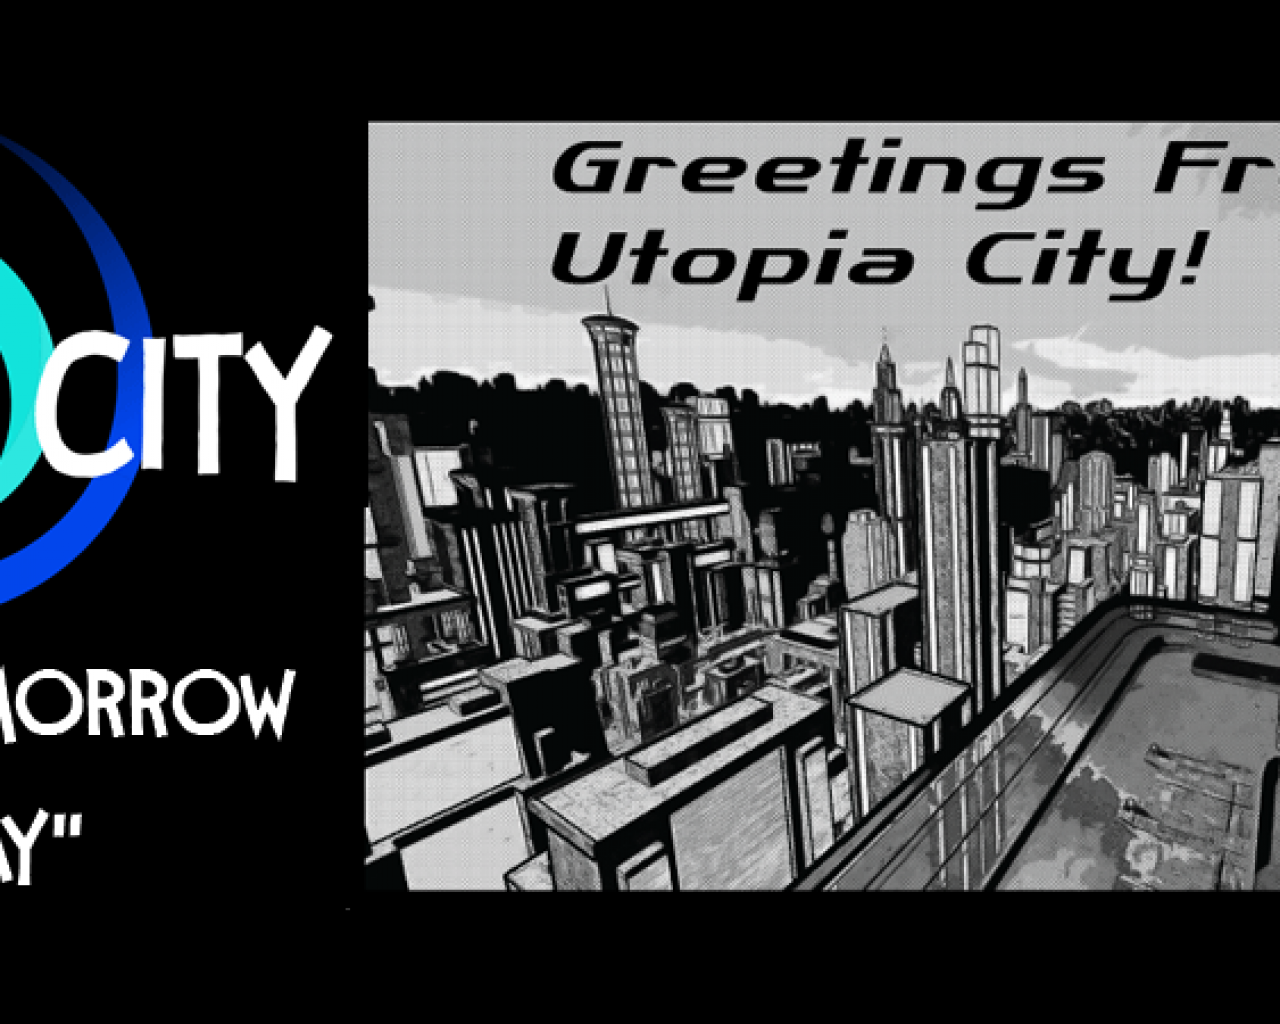 Poster Image for Utopia City